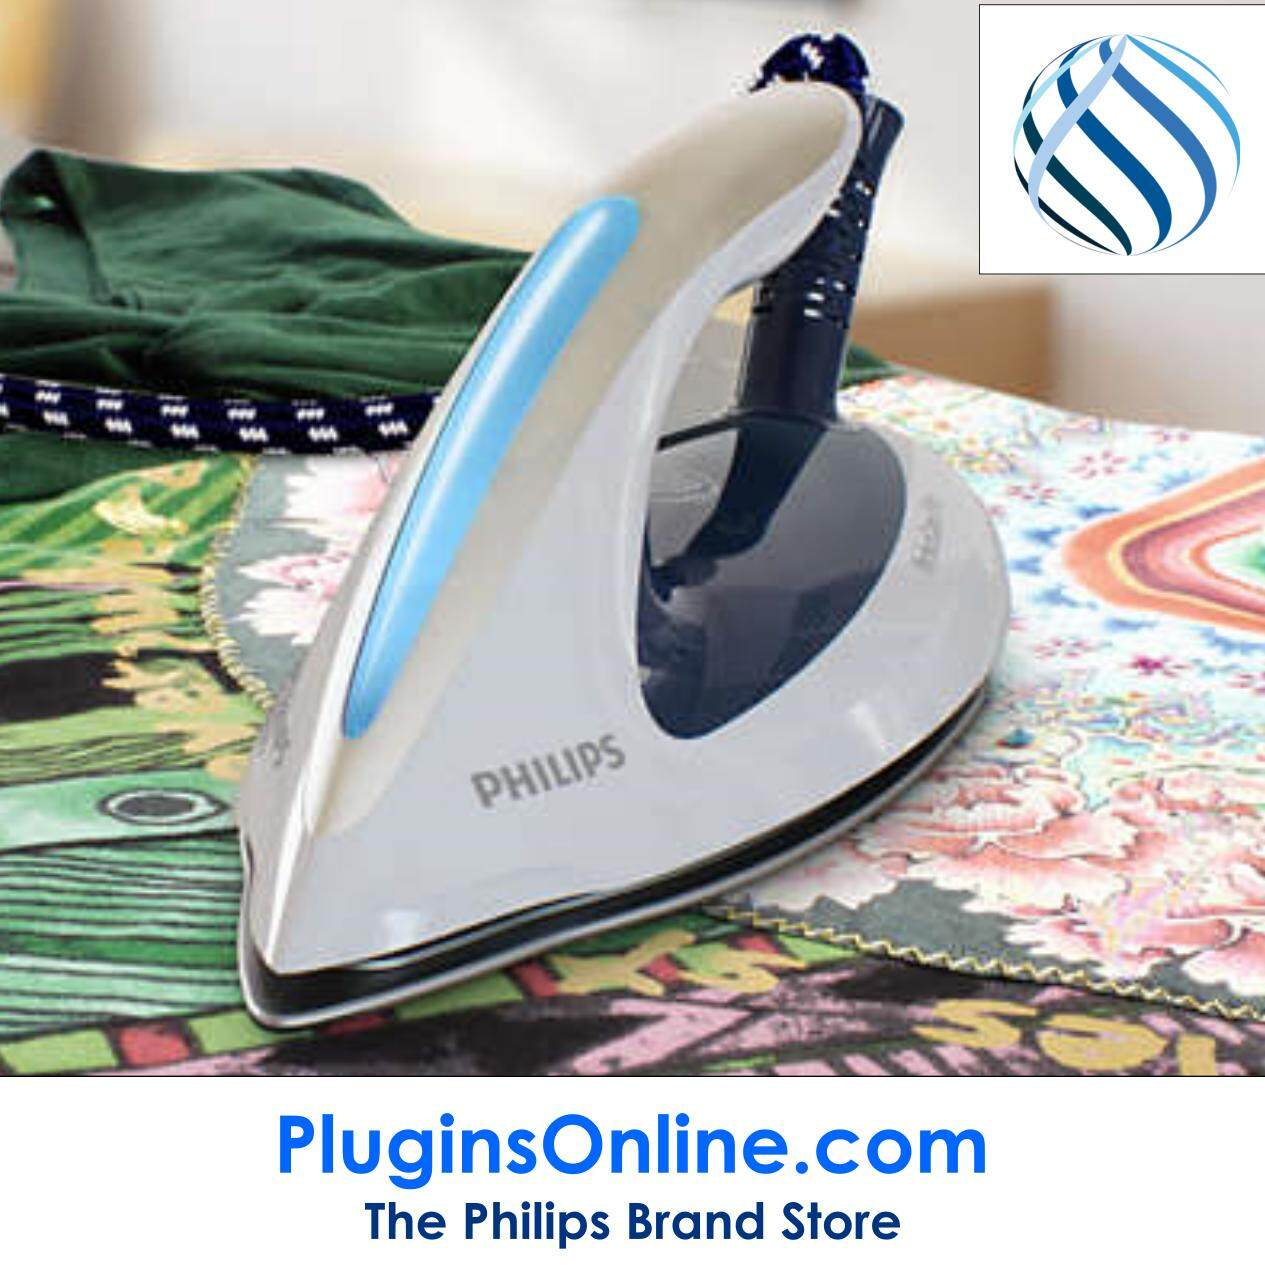 Philips Gc9630/20 Perfectcare Elite Steam Generator (board Not Included) (gc9630) By Philips Brand Store - Plugins.